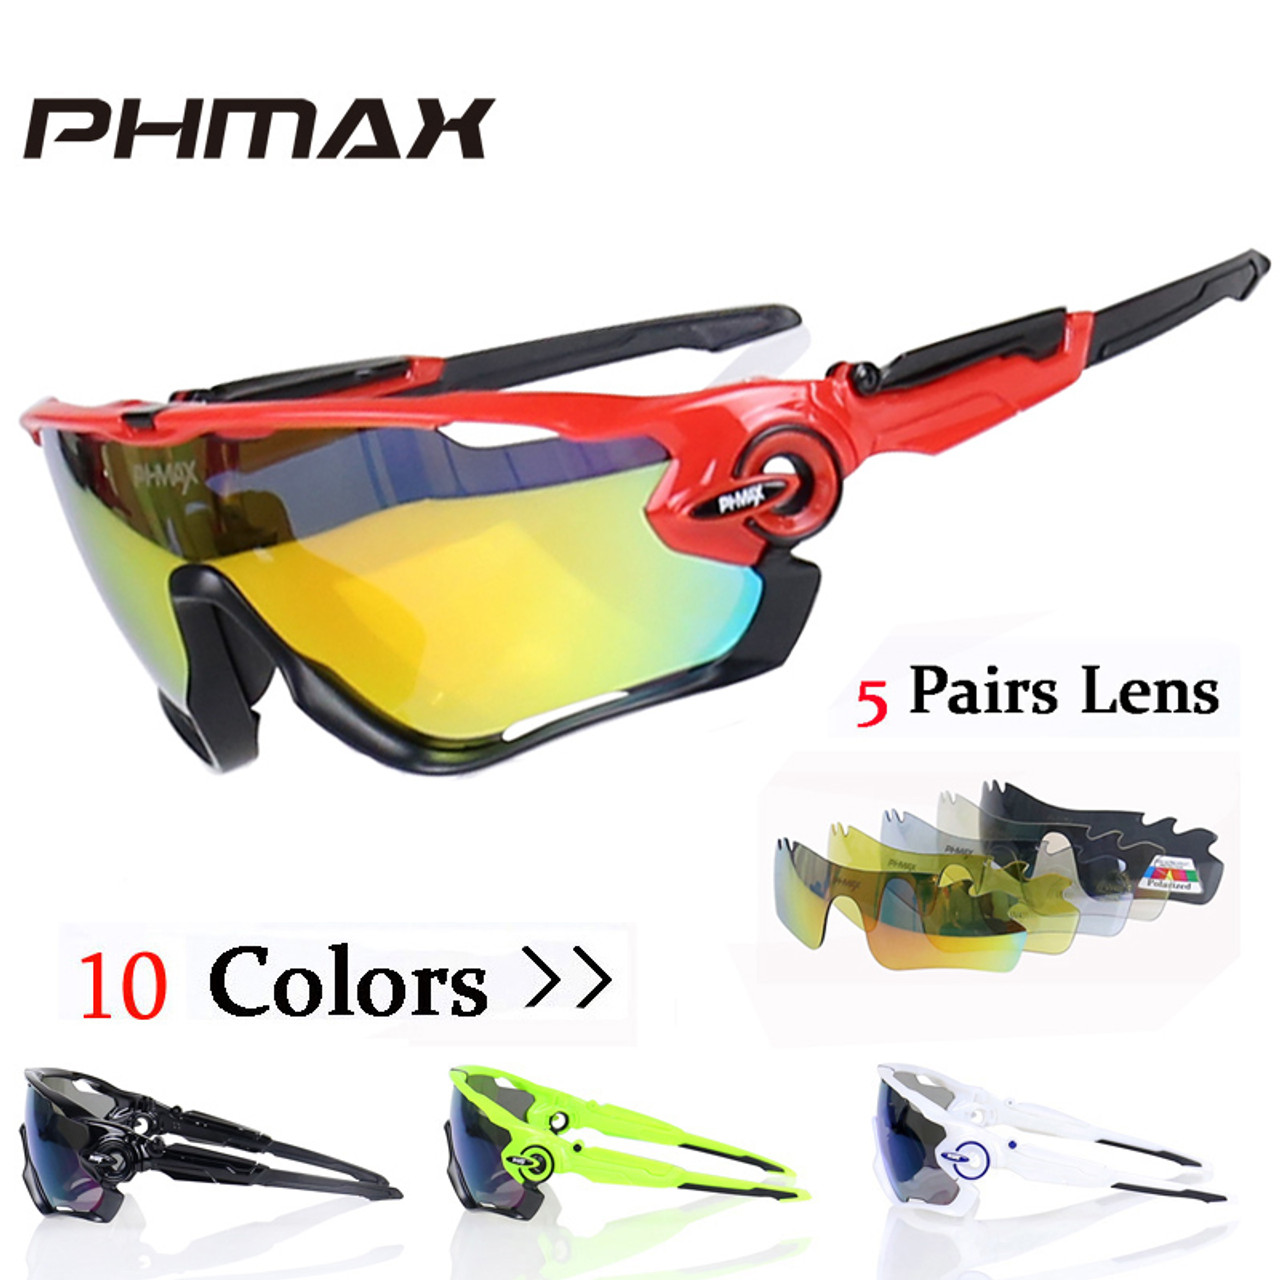 dcdb4ea9c6 PHMAX Polarized 5 Lens Cycling Eyewear MTB Bicycle Sun Glasses Cycling  Sunglasses Mountain Bike Goggles Gafas de Ciclismo - OnshopDeals.Com